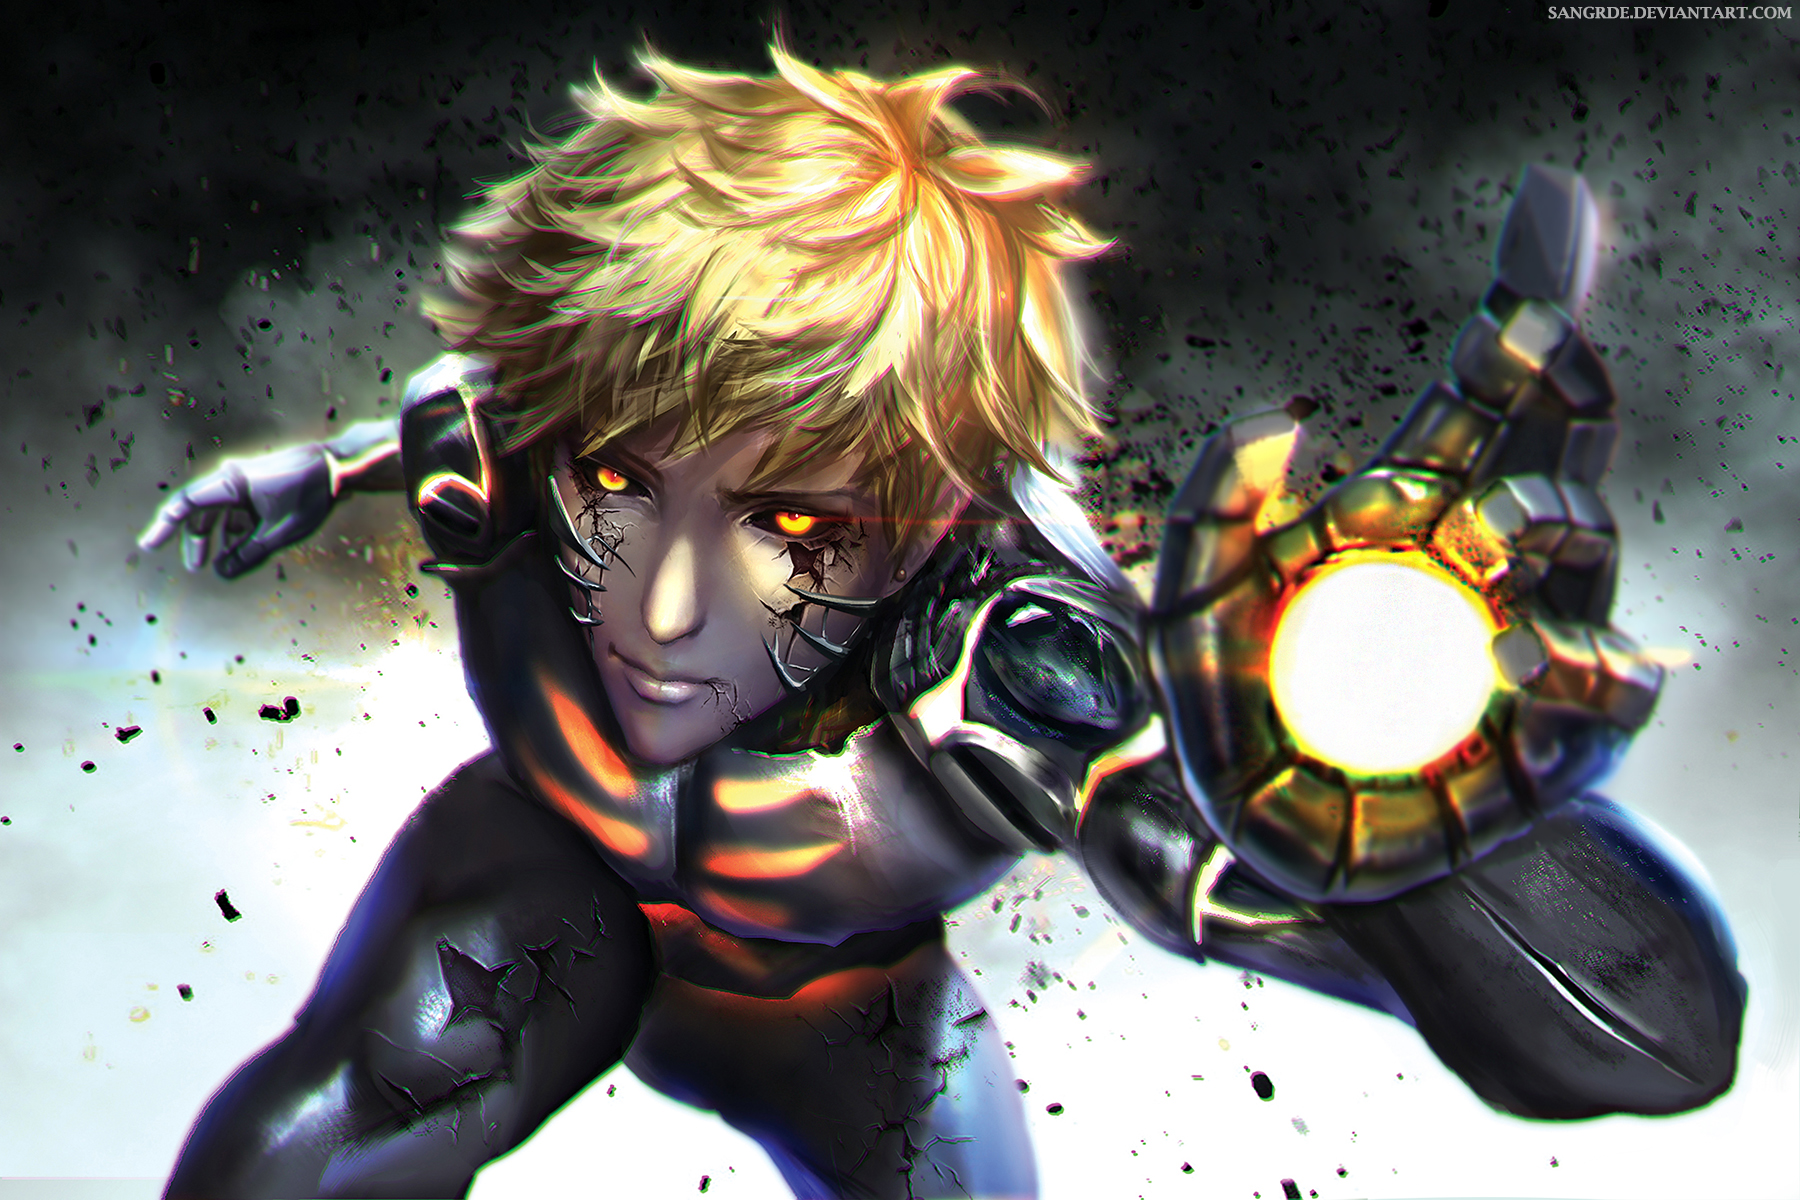 Genos (One Punch Man) - One Punch Man - Image #1960442 ...